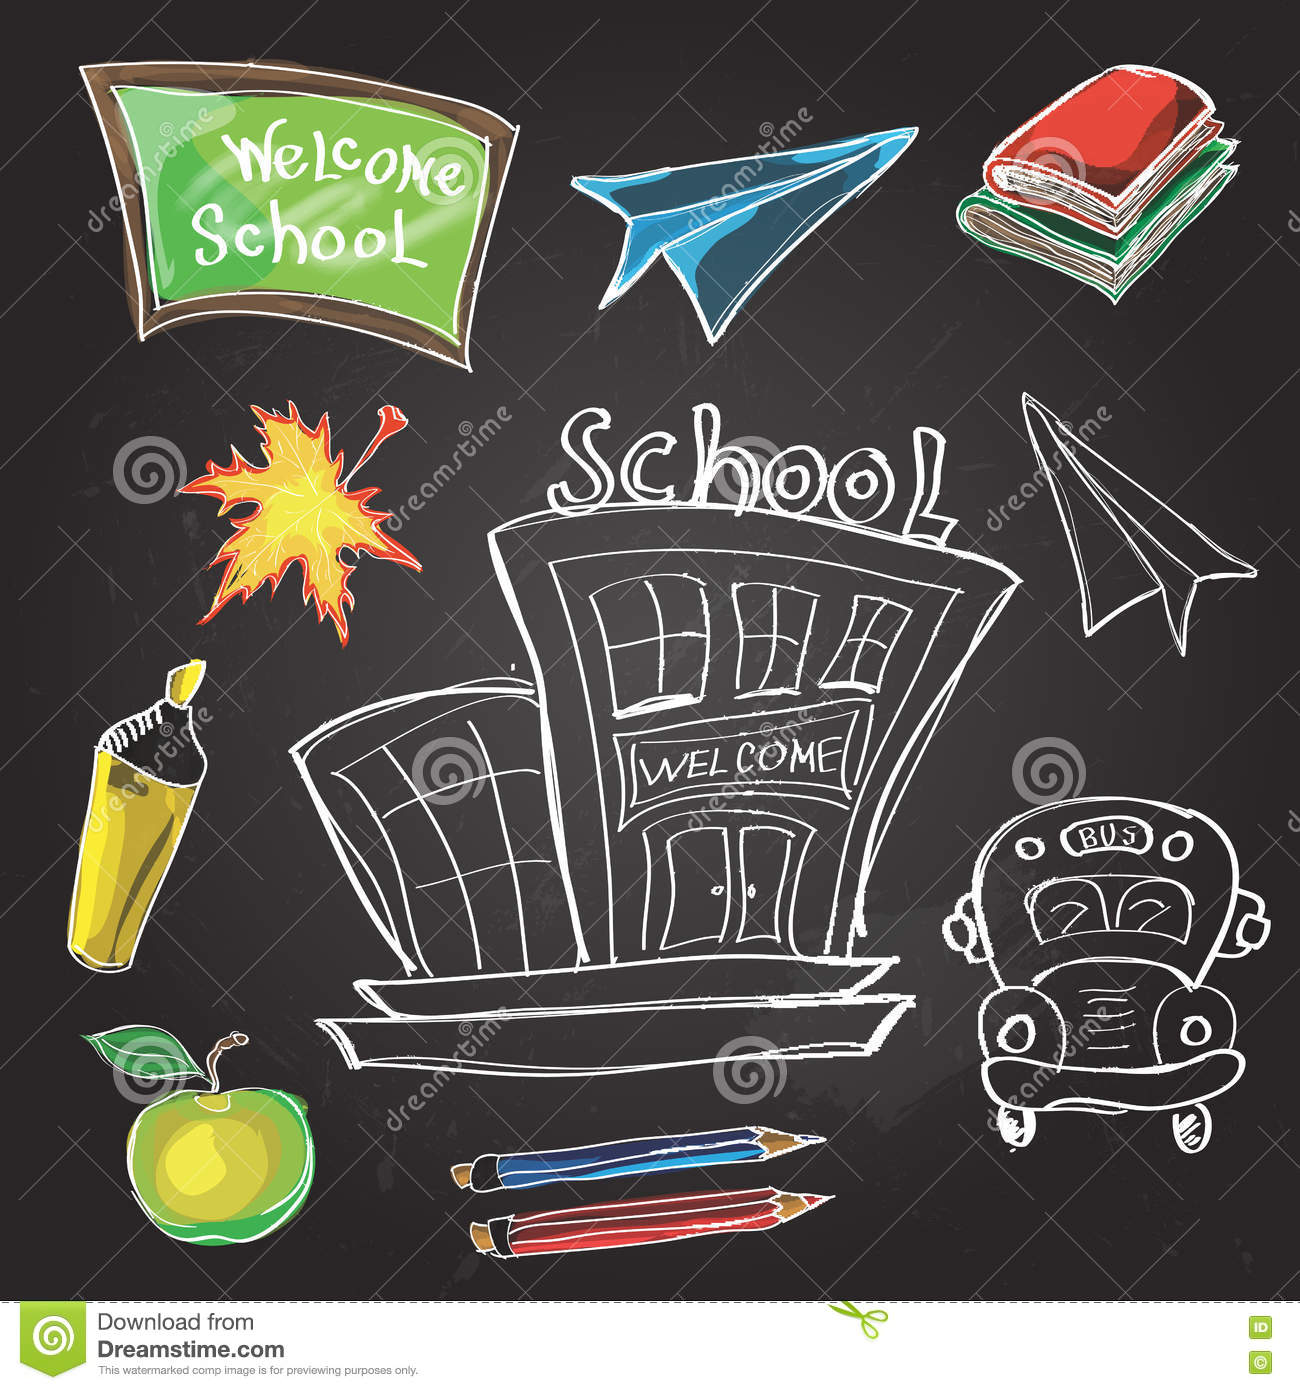 Science Design For Notebook: Welcome Back To School Classroom Supplies Notebook Doodles